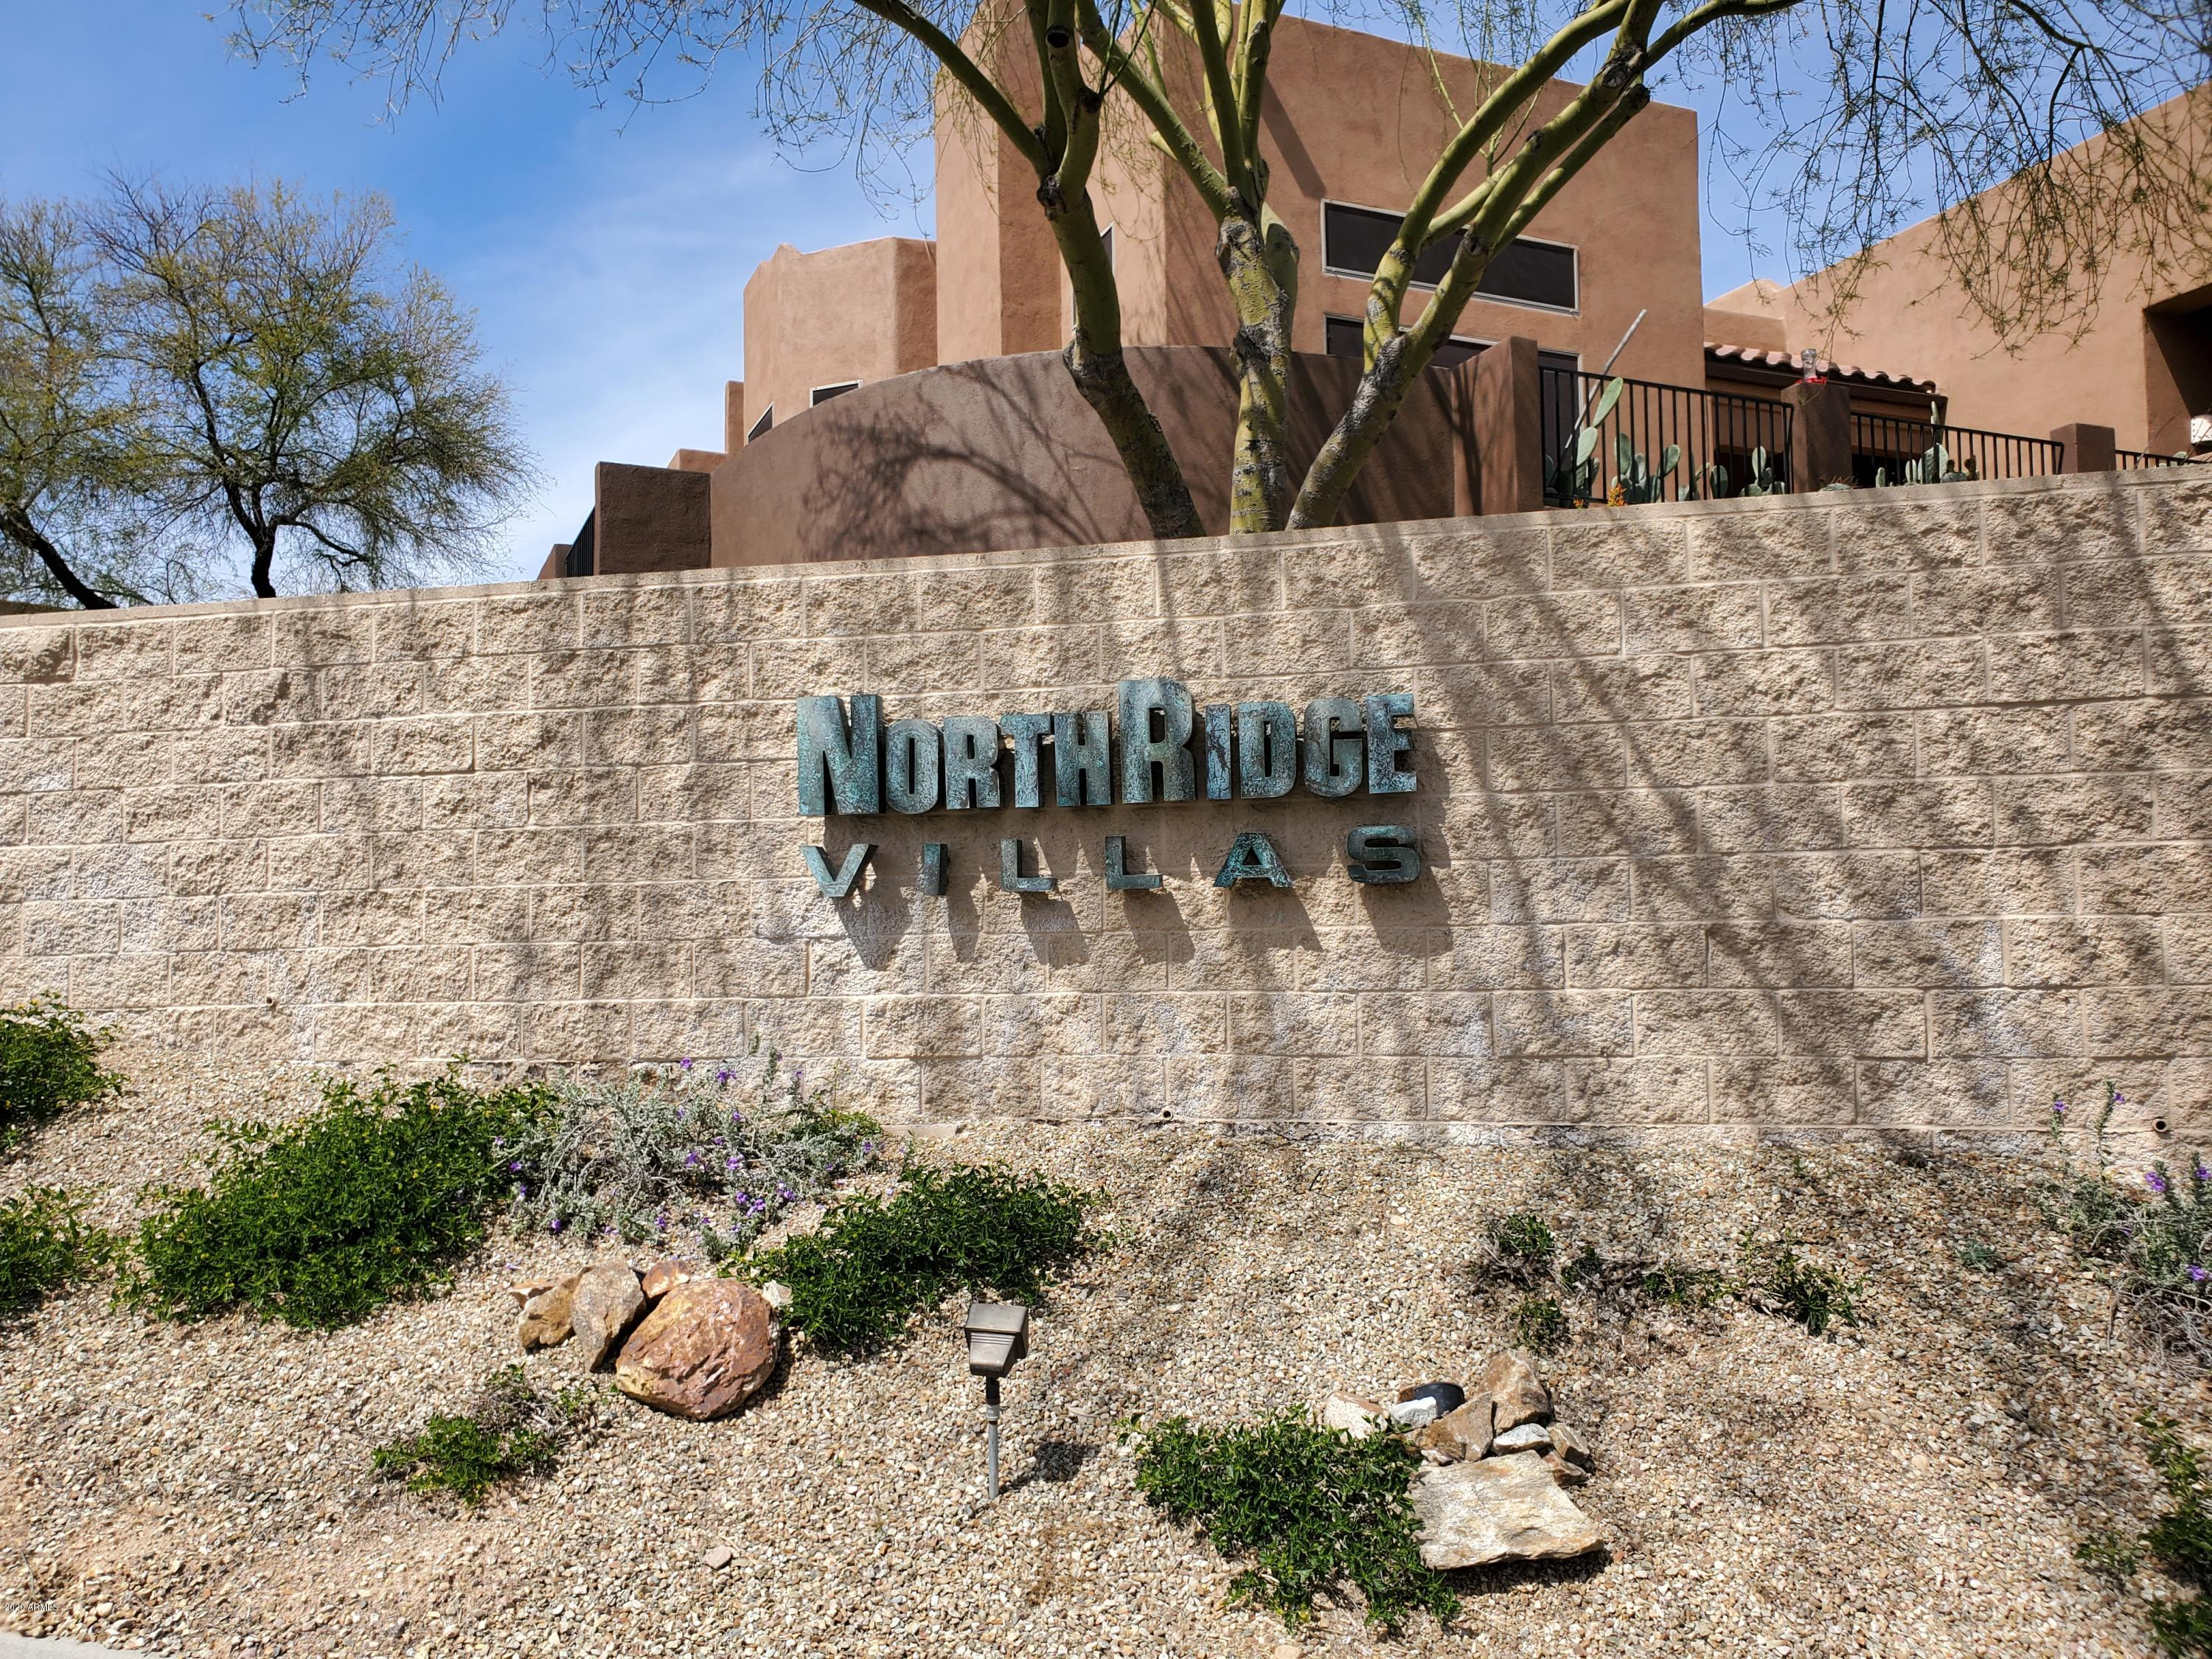 MLS 5962630 54 NORTHRIDGE Circle, Wickenburg, AZ 85390 Wickenburg AZ Condo or Townhome